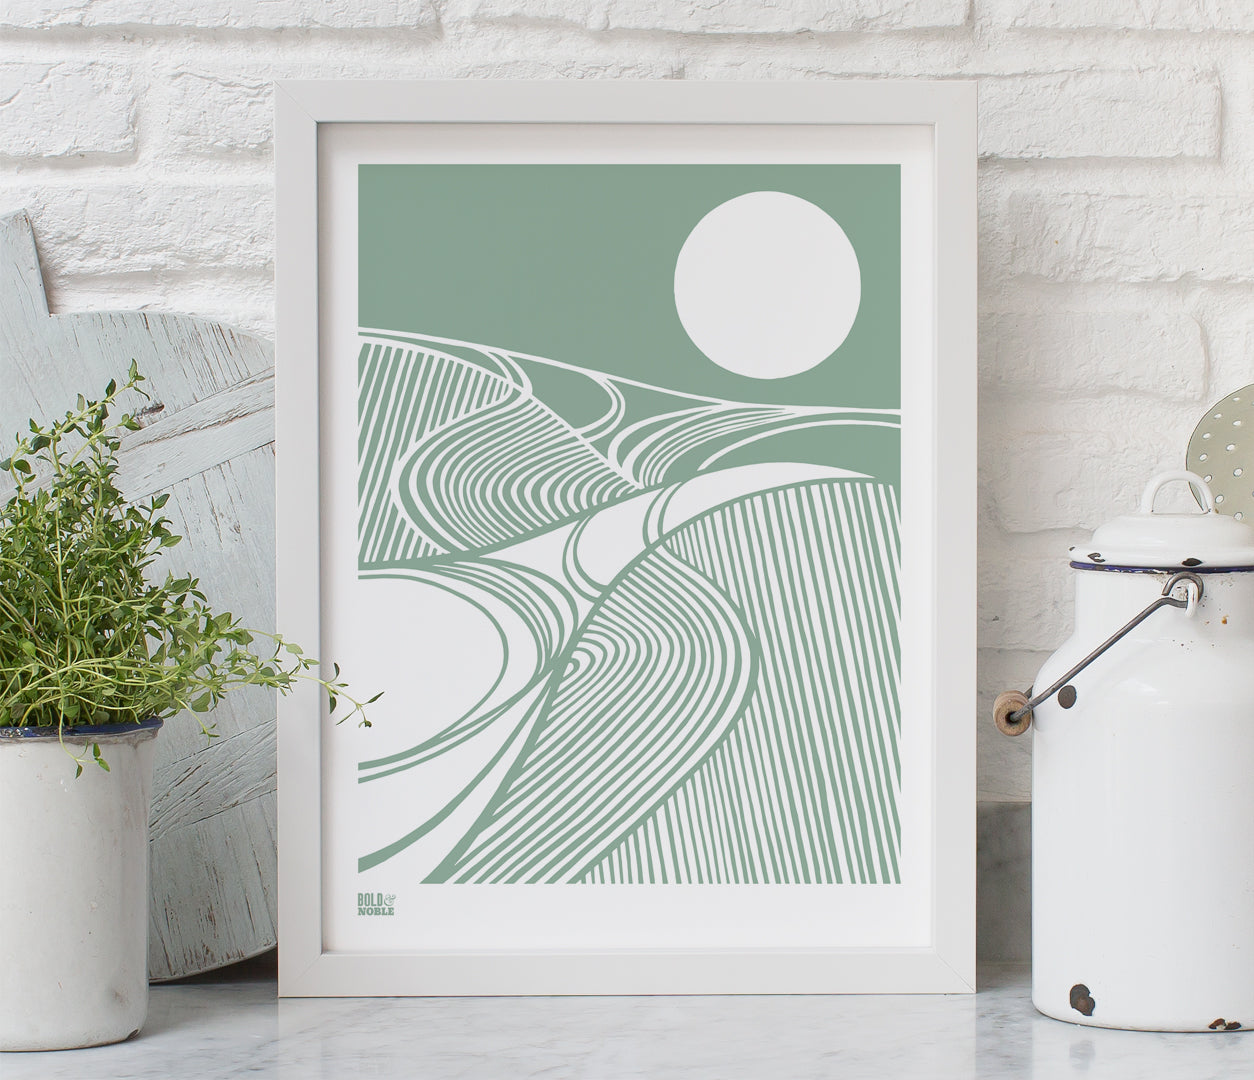 Harvest Moon Print in Seafoam Green, printed on recycled card, delivered worldwide